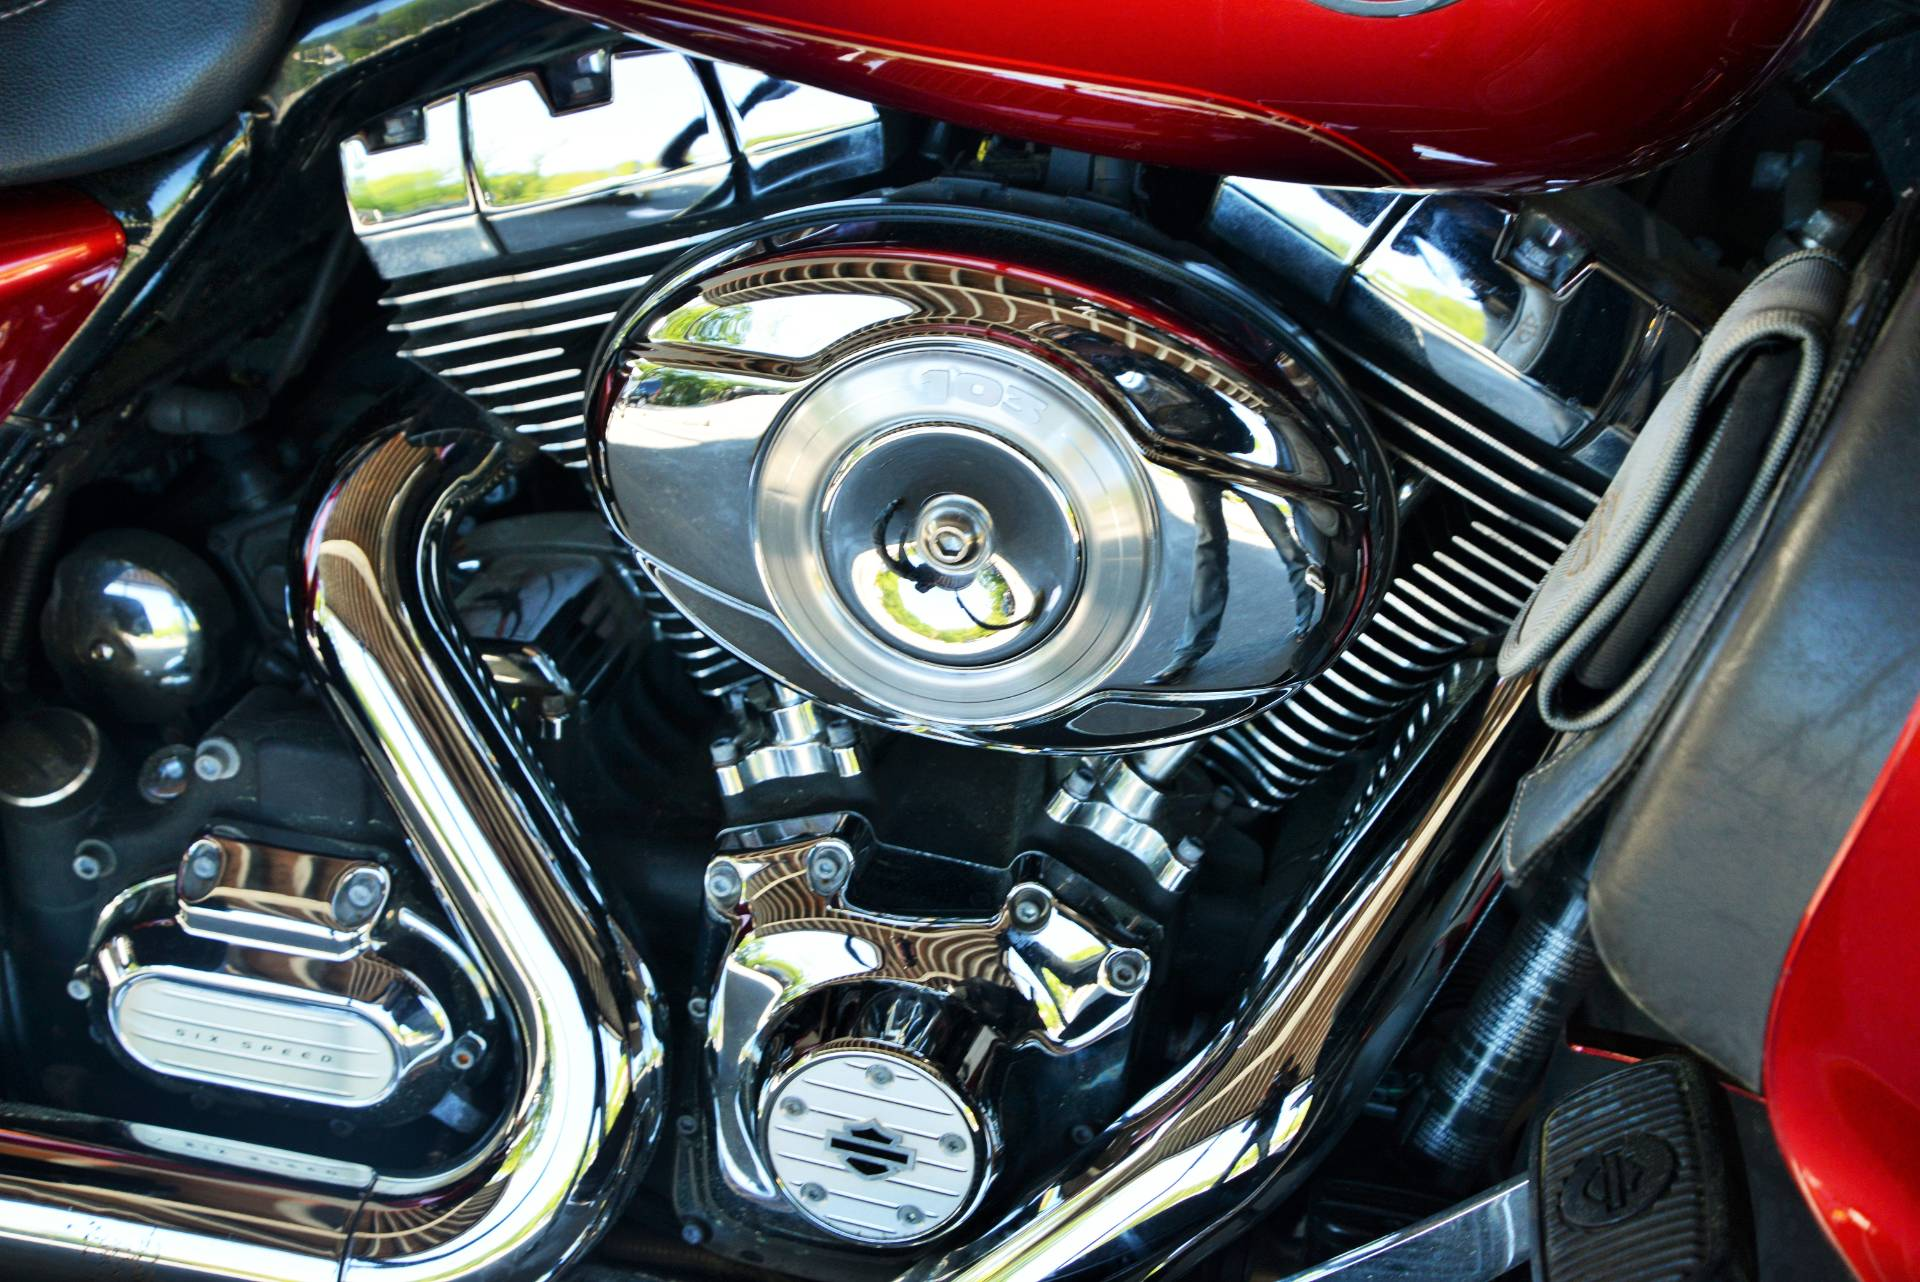 2012 Harley-Davidson ELECTRA GLIDE ULTRA in Lakewood, New Jersey - Photo 7